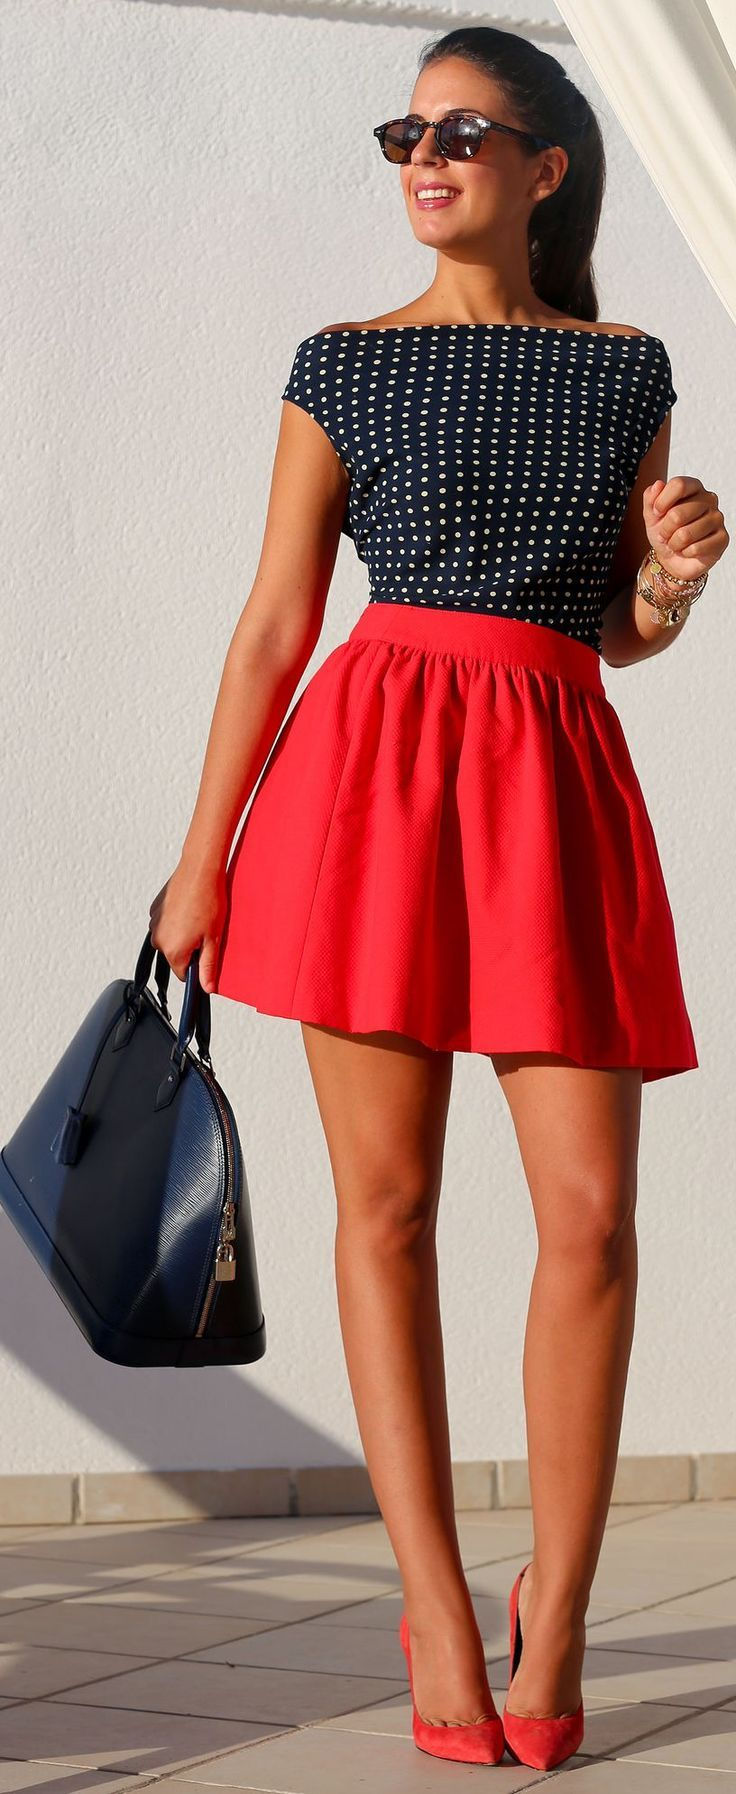 Shop this look on Lookastic:  http://lookastic.com/women/looks/sunglasses-sleeveless-top-bracelet-skater-skirt-satchel-bag-pumps/9683  — Dark Brown Sunglasses  — Navy and White Polka Dot Sleeveless Top  — Gold Bracelet  — Red Skater Skirt  — Navy Leather Satchel Bag  — Red Suede Pumps